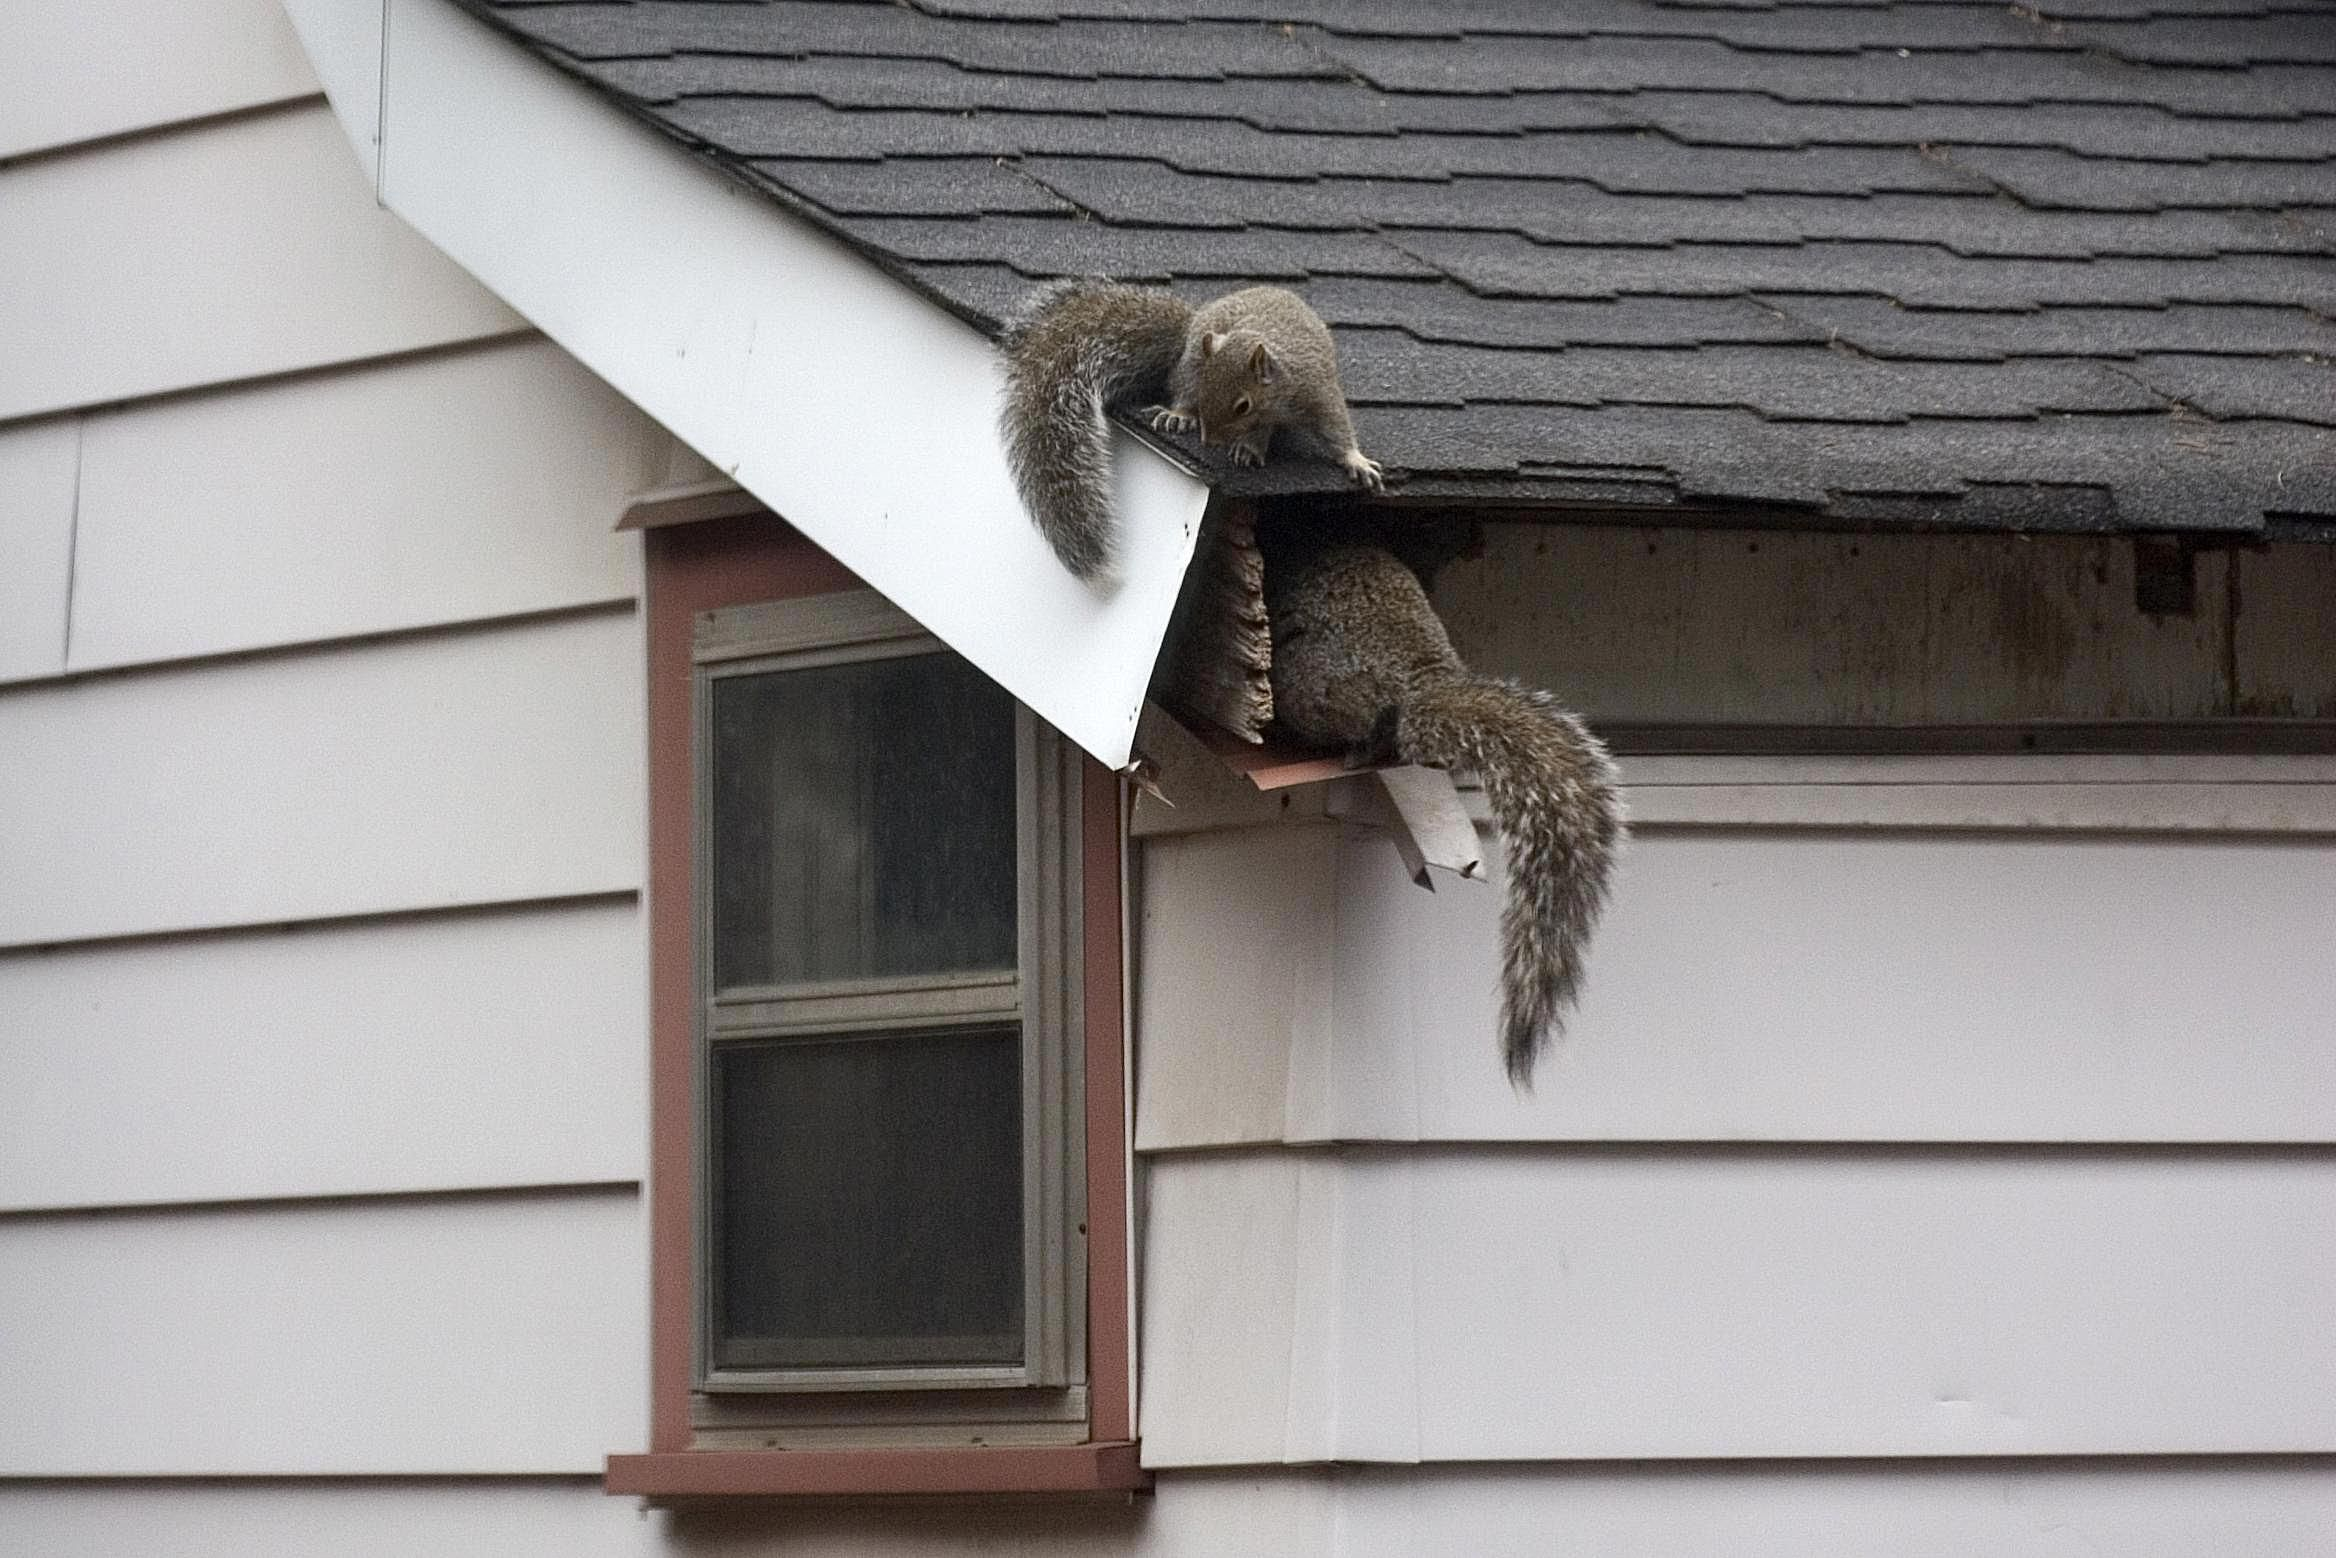 7 humane ways to get squirrels out of your house